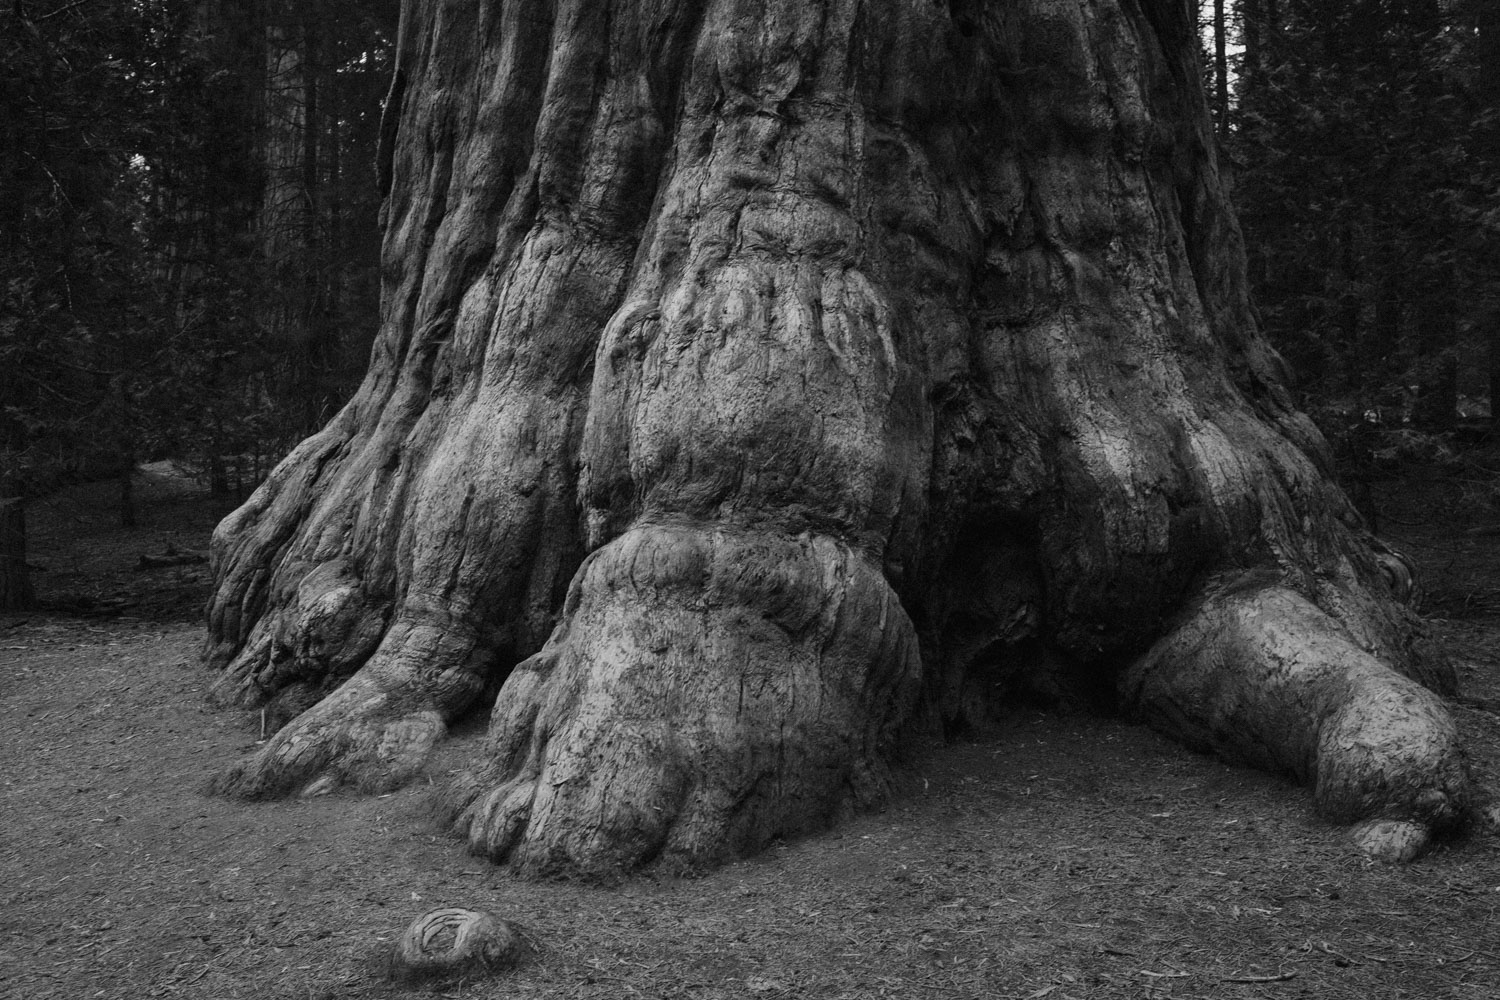 A giant sequoia at  Sequoia and Kings Canyon National Parks